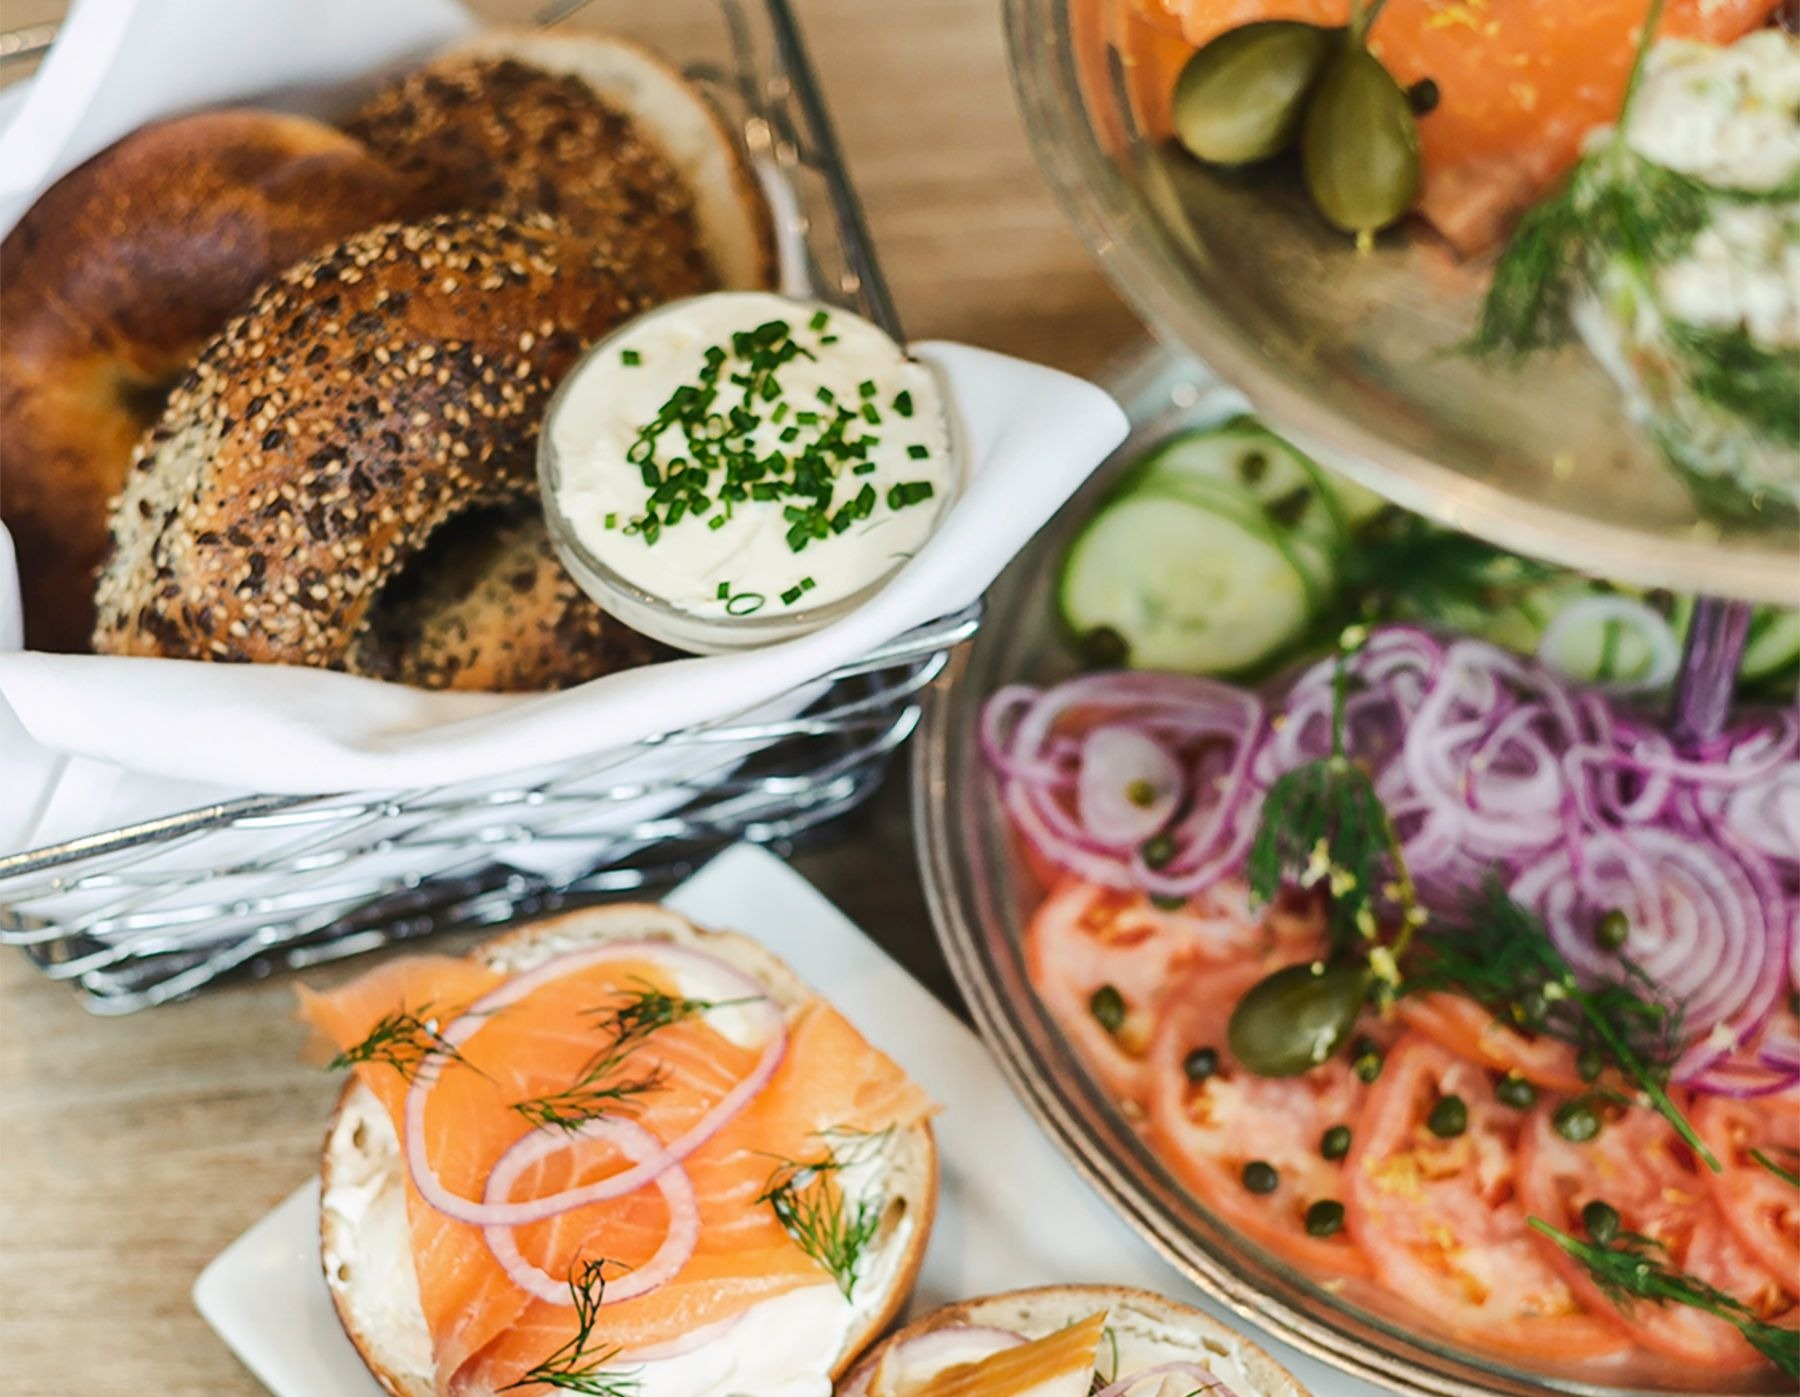 Smoked Seafood-Packed Bagel Towers Arrive in Back Bay